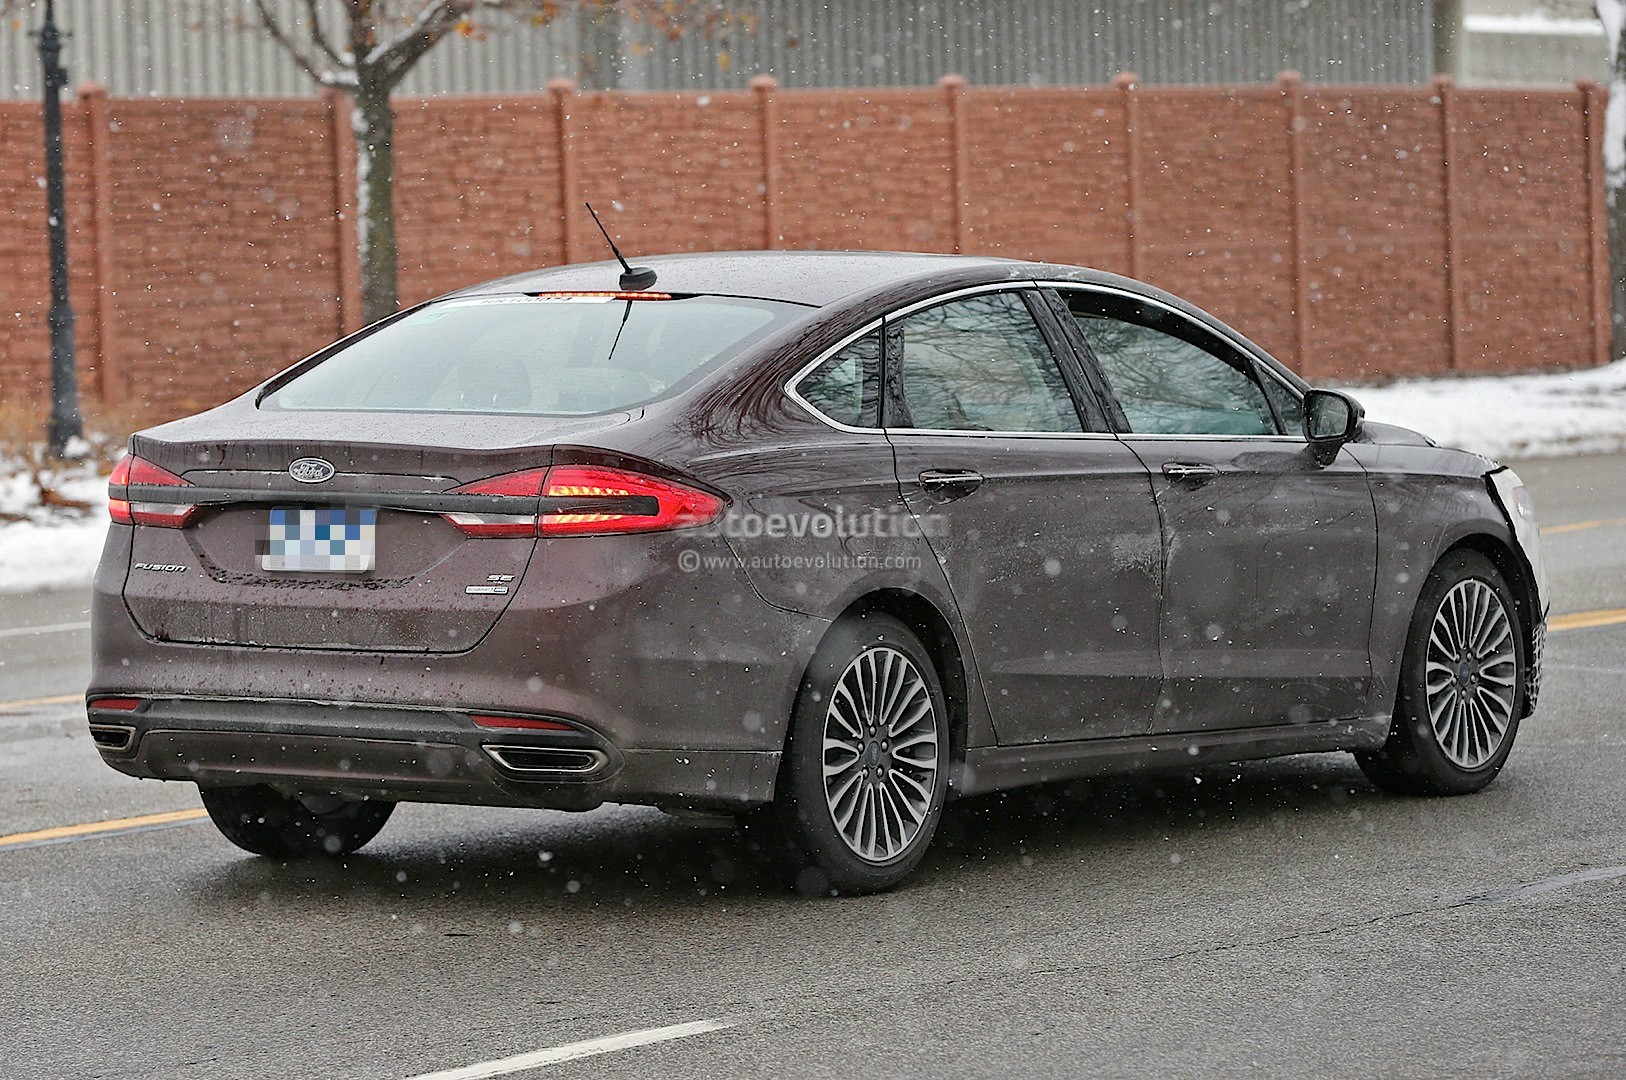 2017 ford fusion mondeo loses some camo spyshots show rear led strip autoevolution. Black Bedroom Furniture Sets. Home Design Ideas